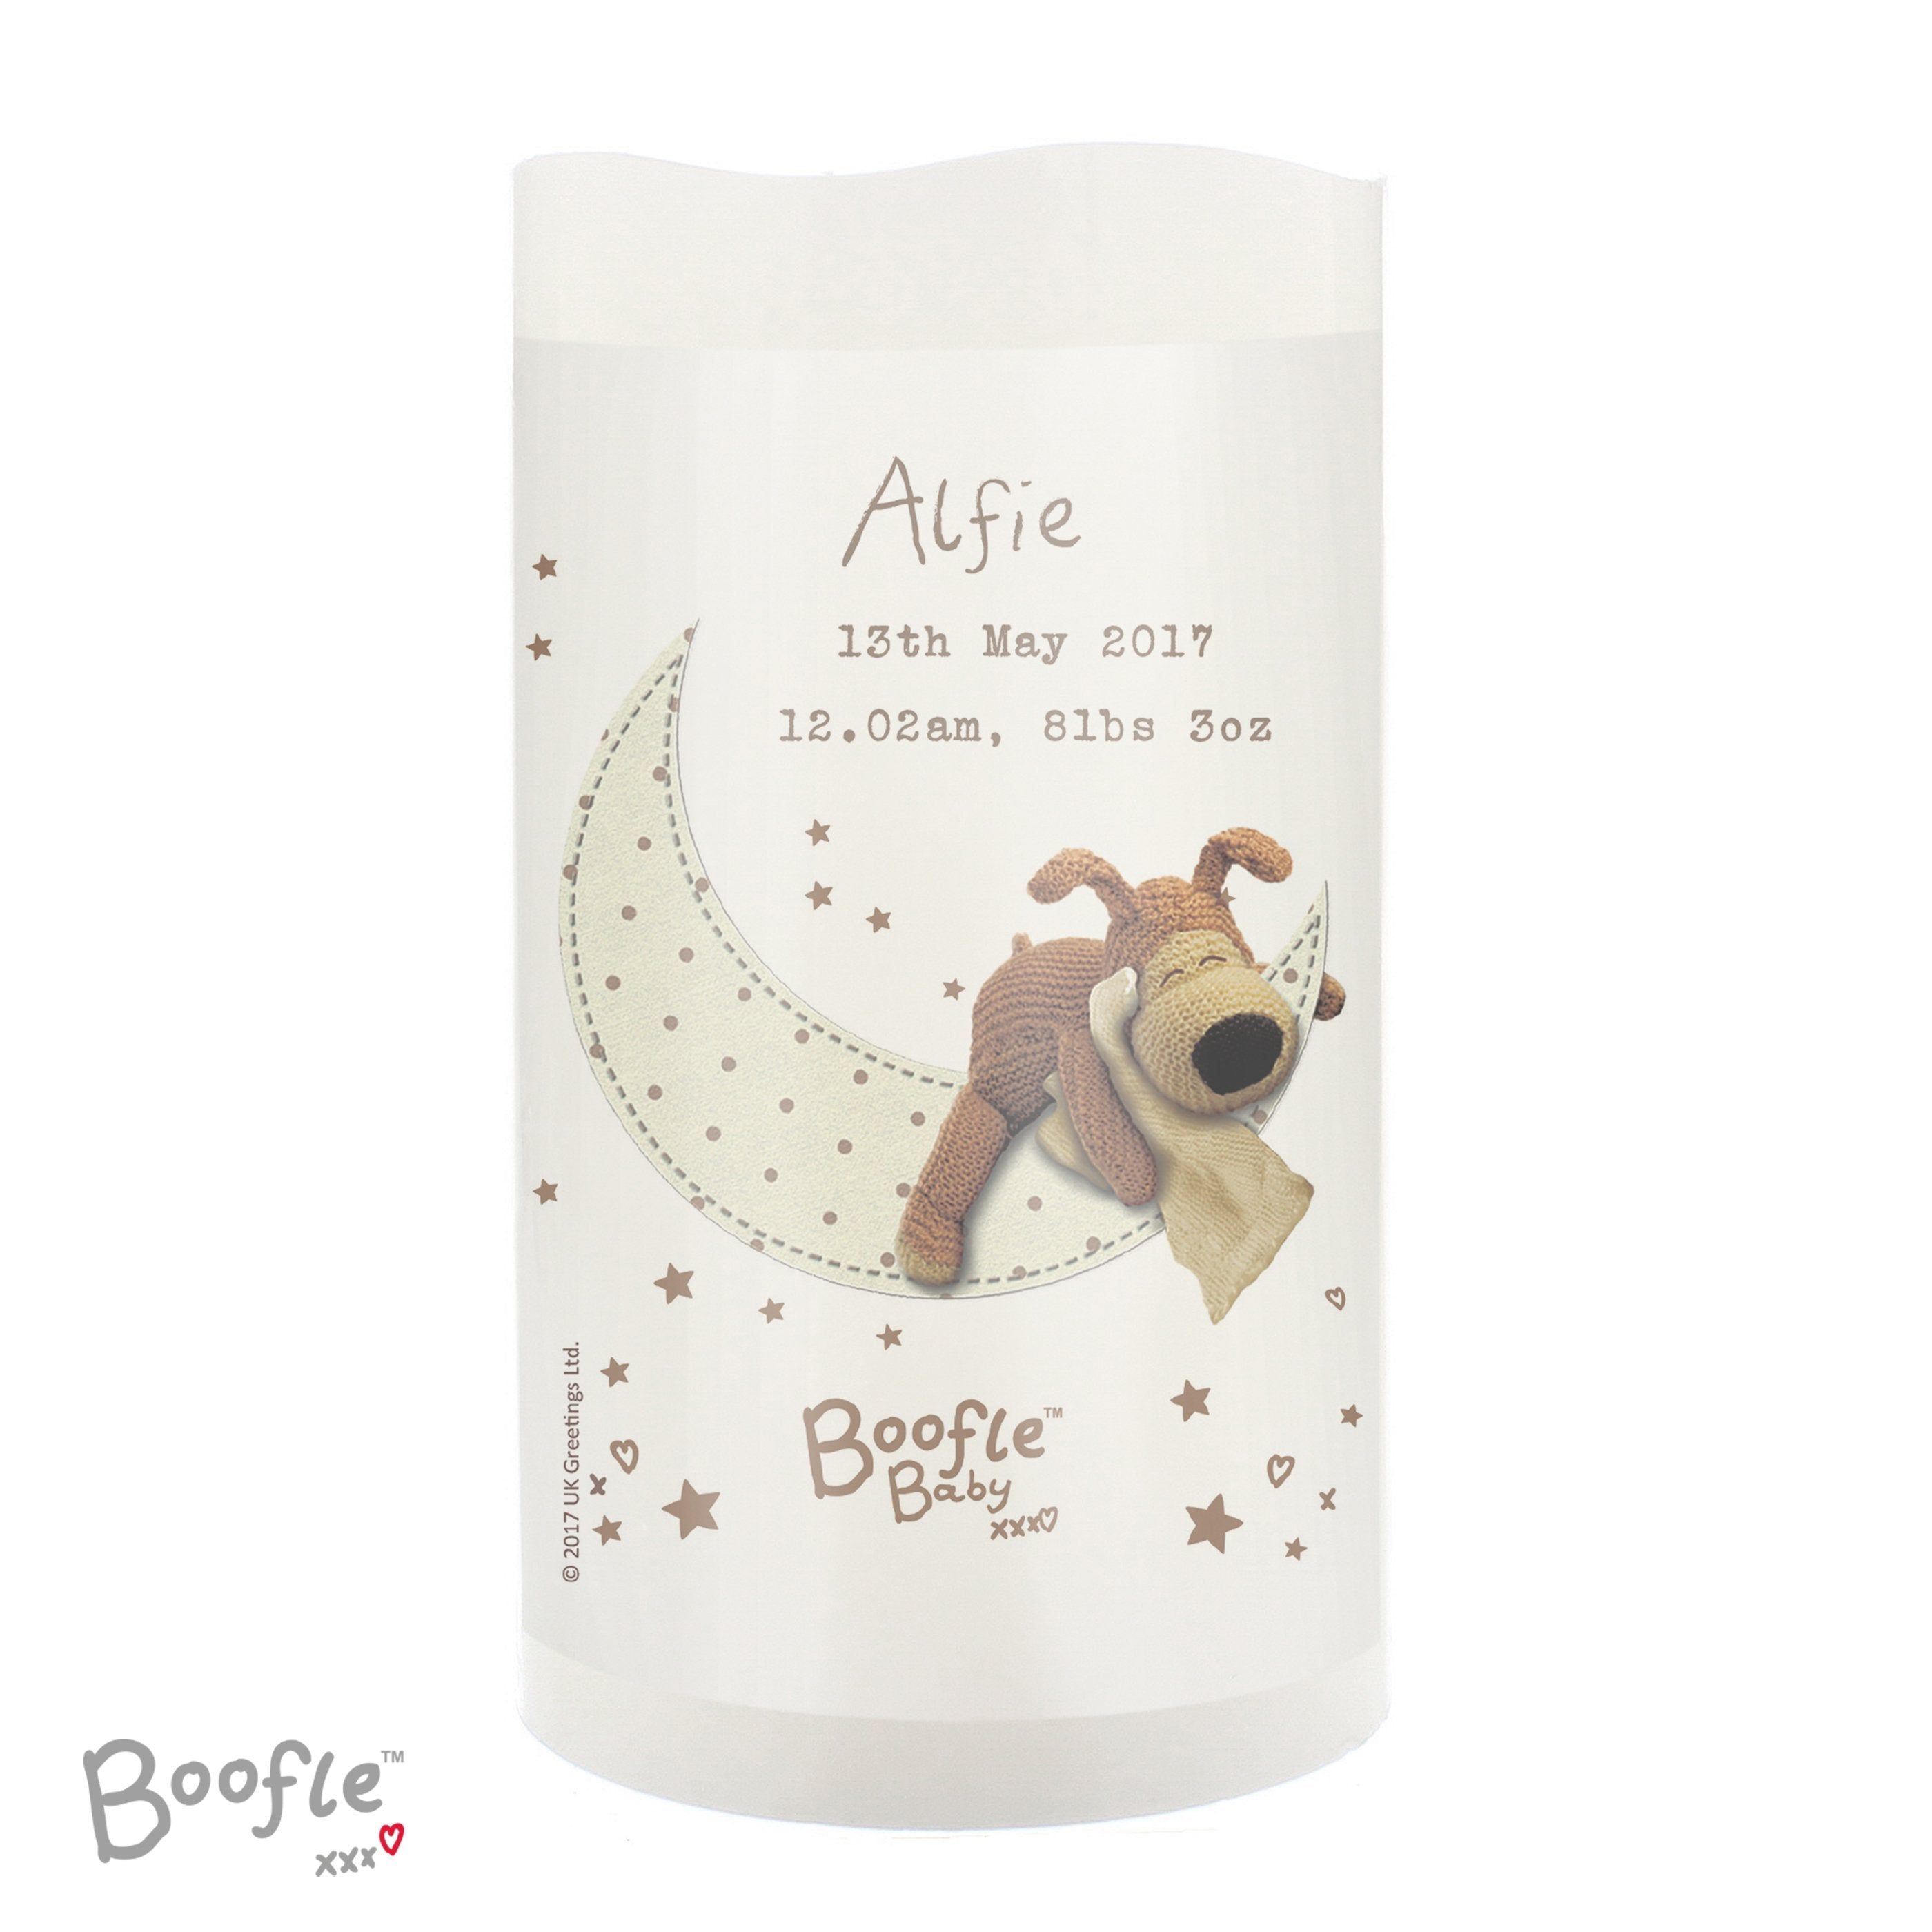 Personalised Boofle Baby Nightlight LED Candle - Shop Personalised Gifts